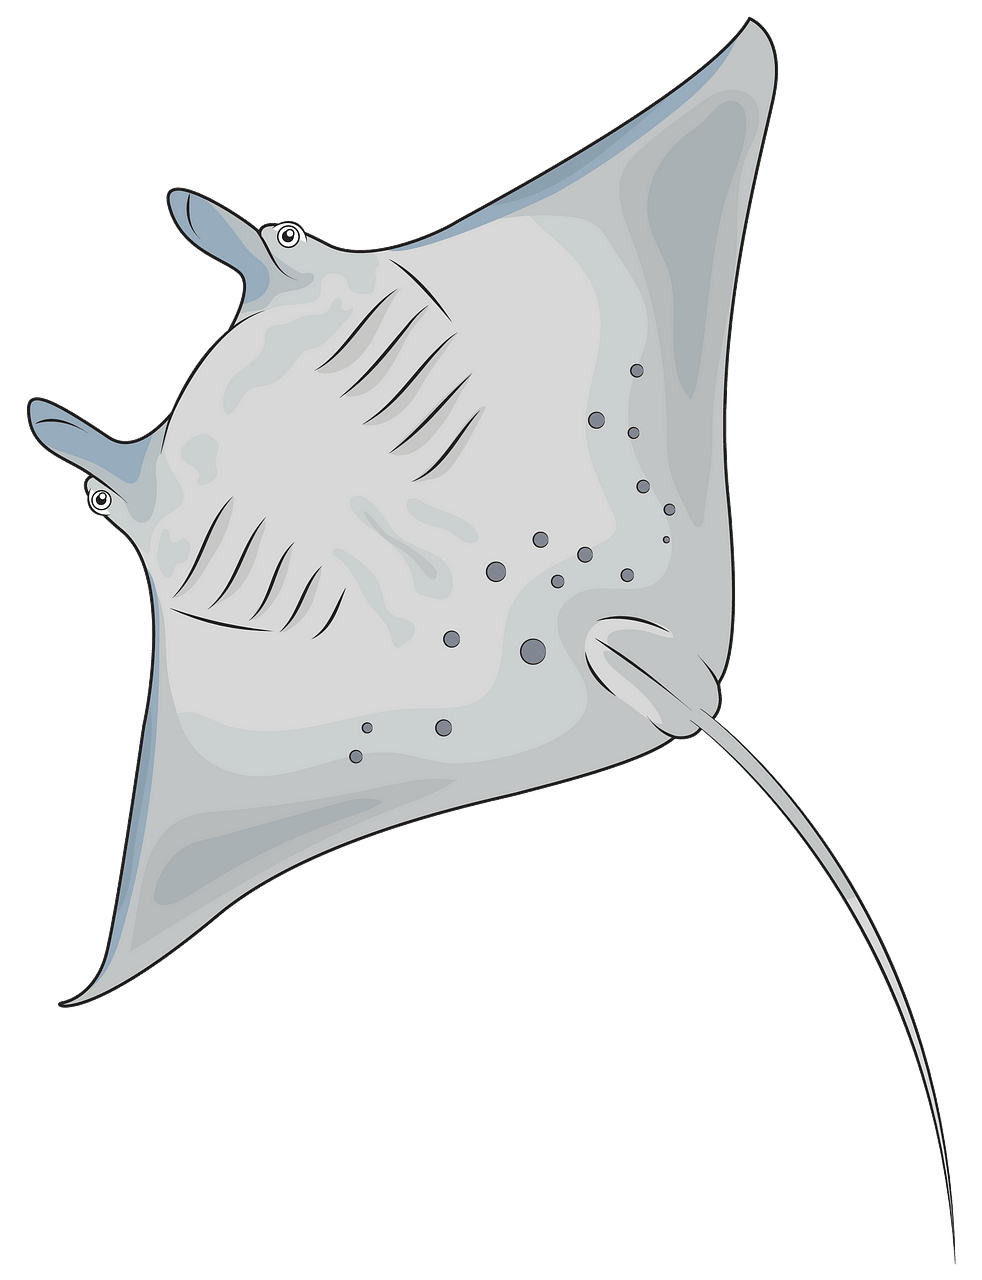 Manta. Ray clipart free download